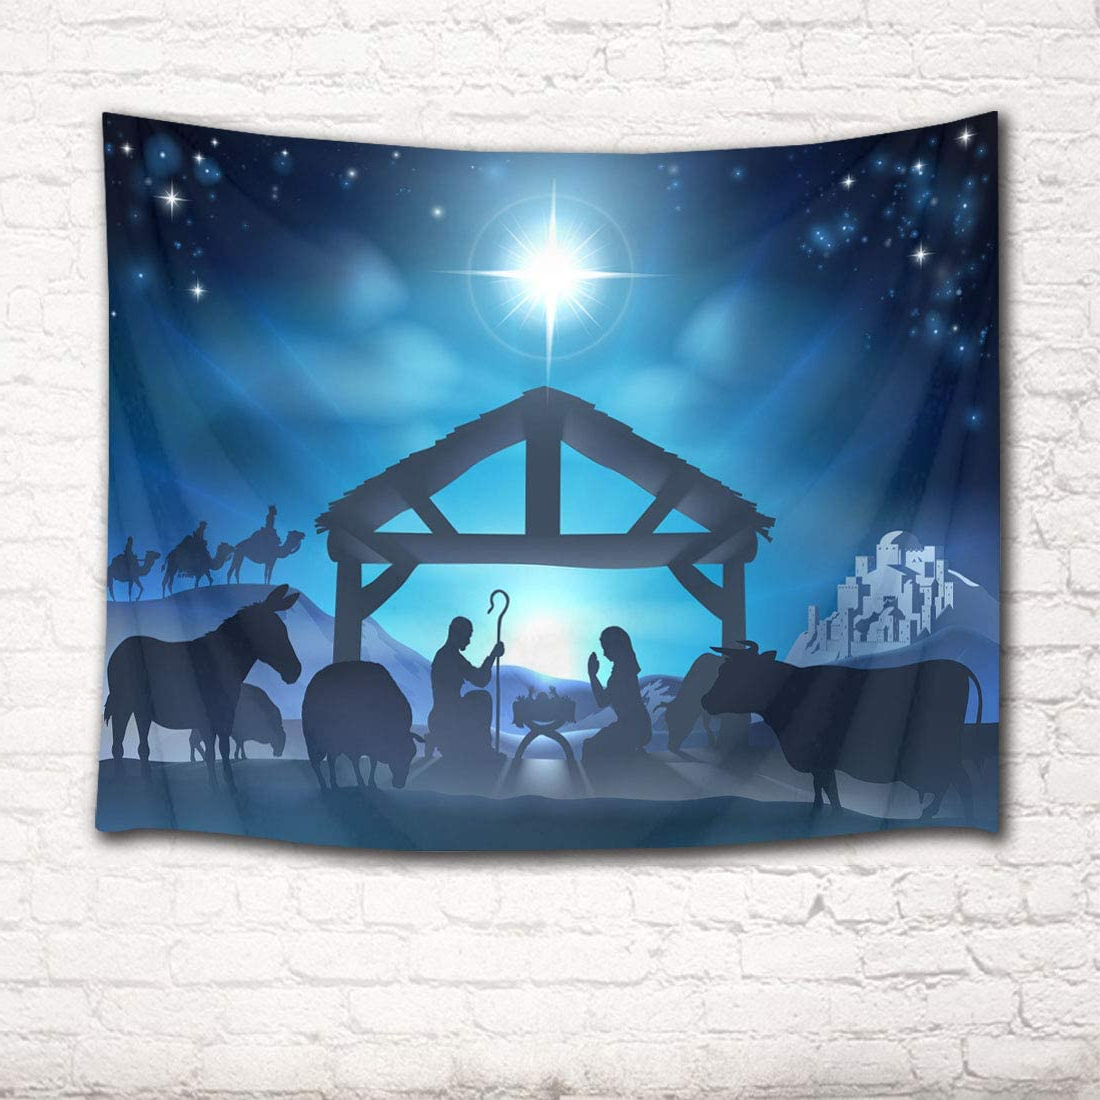 Blended Fabric Blessings Of Christmas Tapestries With Regard To Famous Lb Christmas Jesus Nativity Tapestry Wall Hanging Venus Star Birth Of Jesus Tapestry Wall Art Christian Tapestry For Bedroom Living Room Dorm Wall (View 3 of 20)